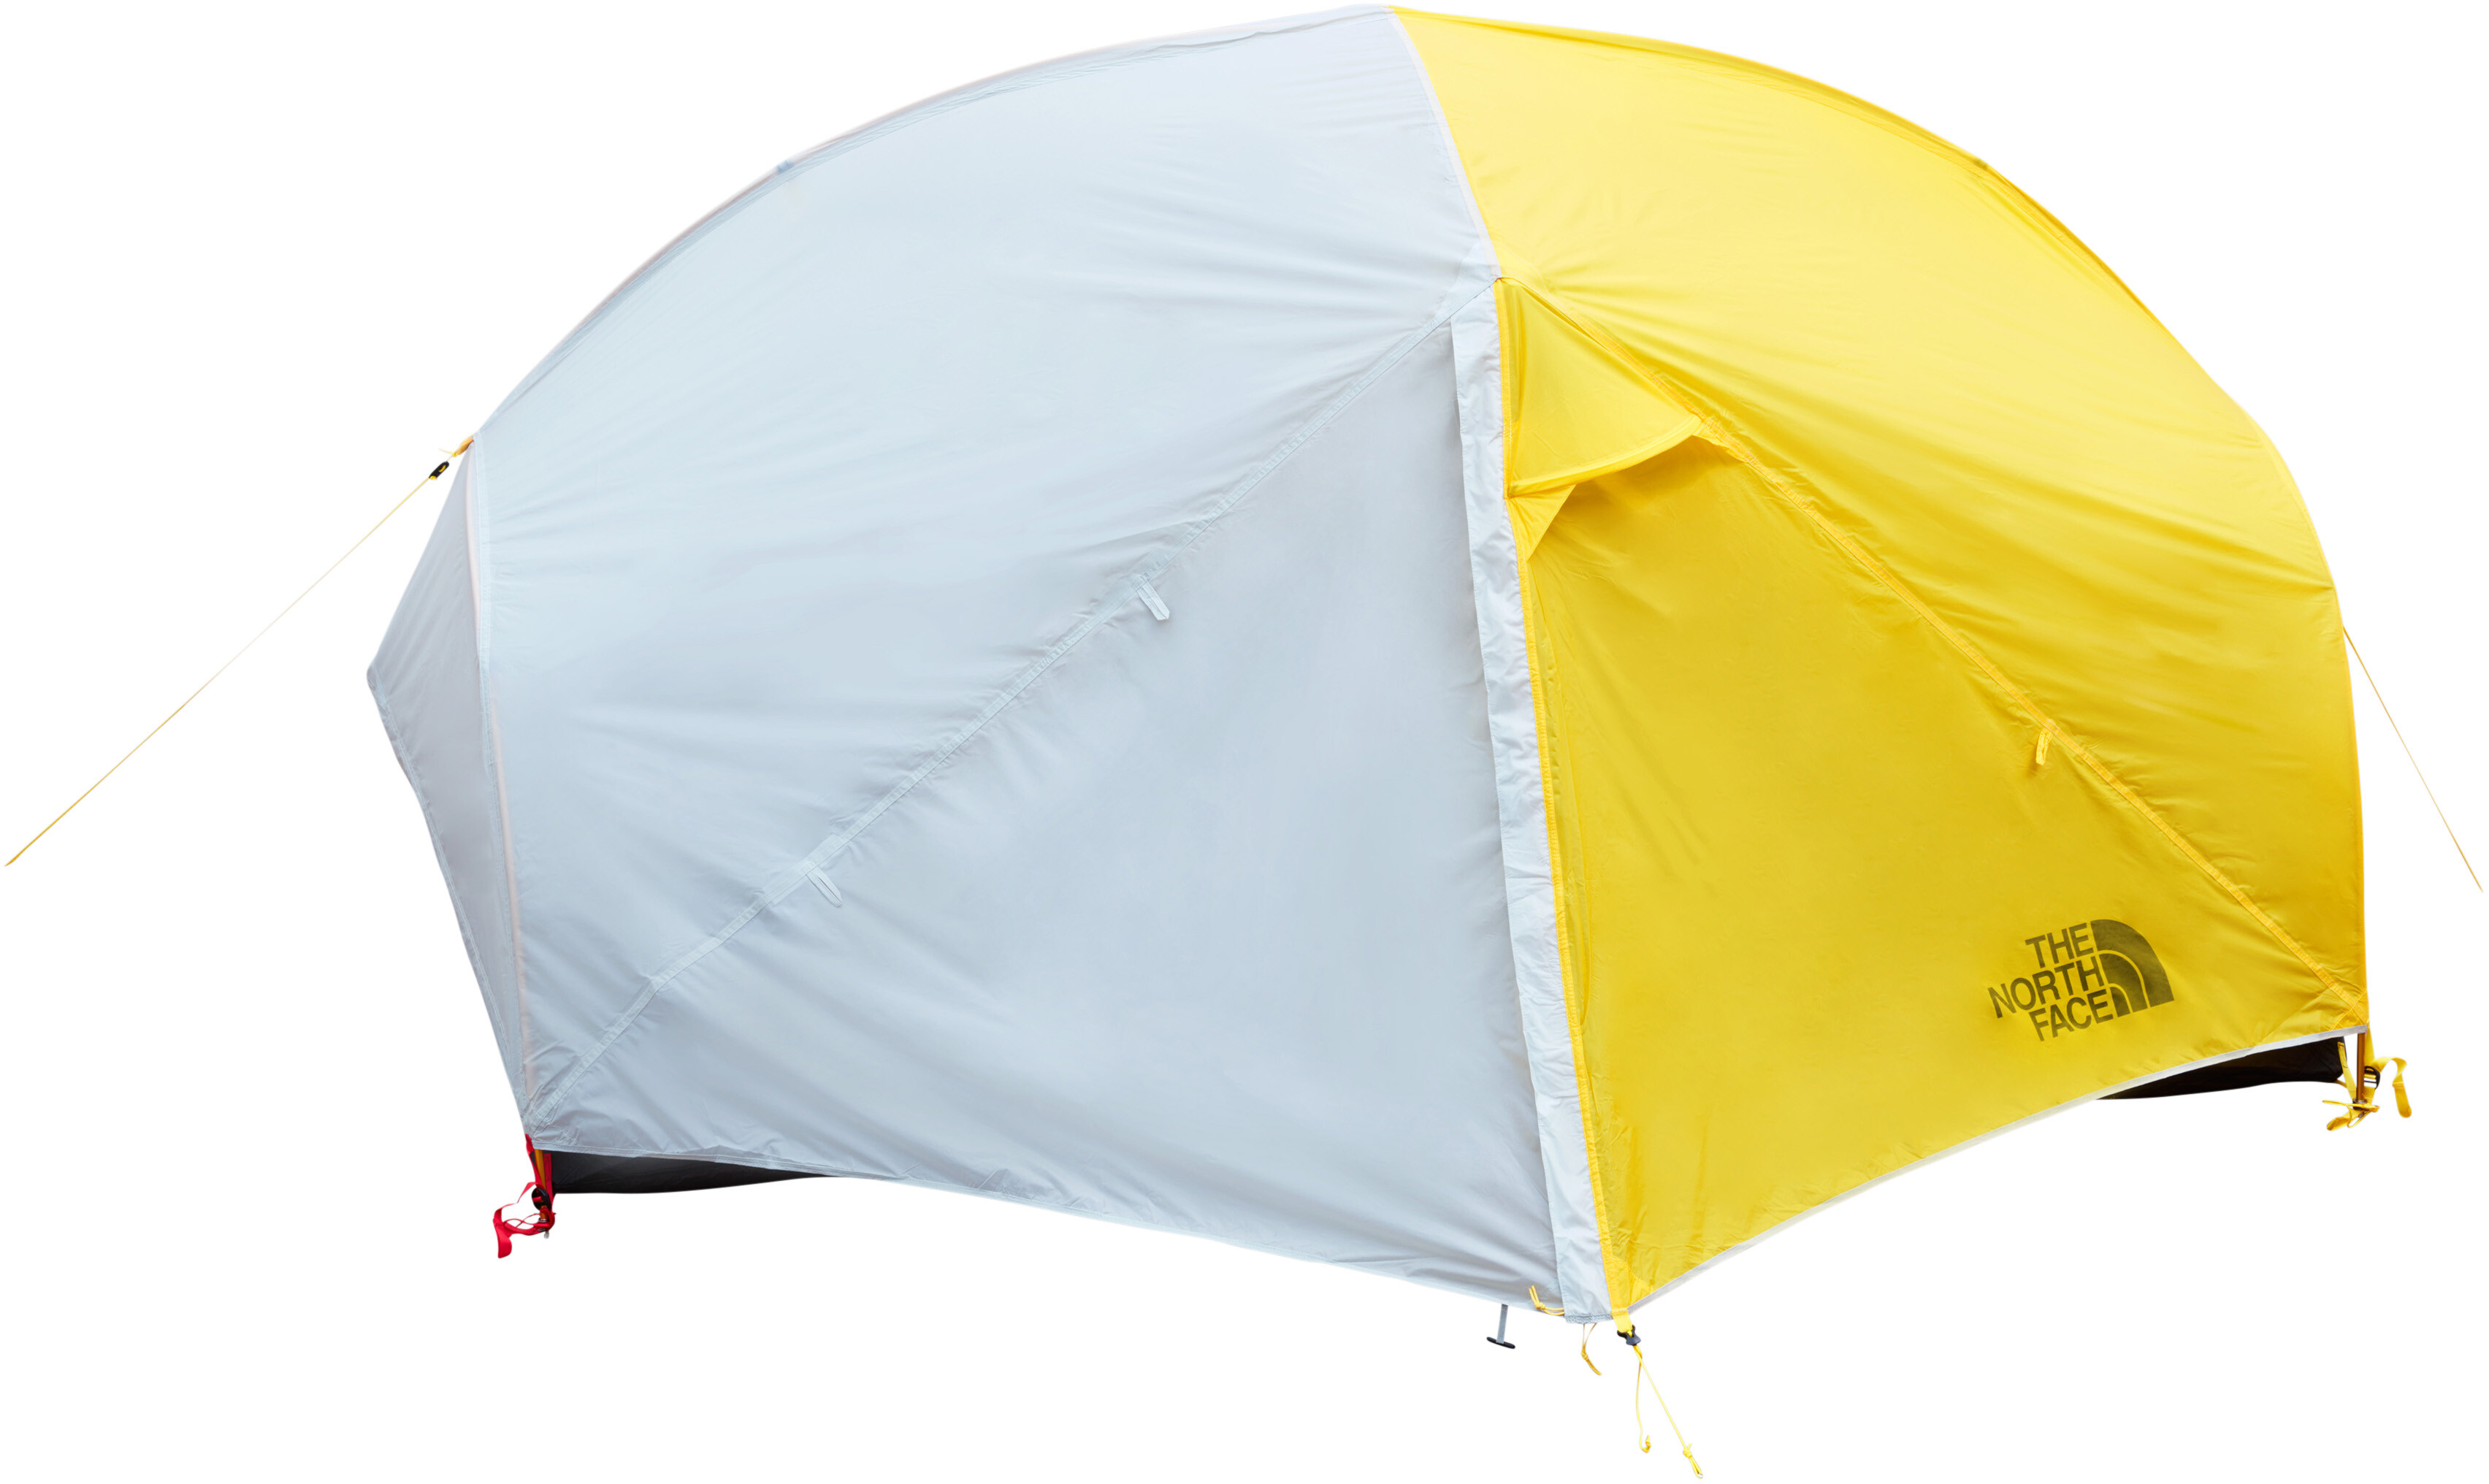 d802964d2c The North Face Triarch 2 Tent canary yellow/high rise grey | campz.ch